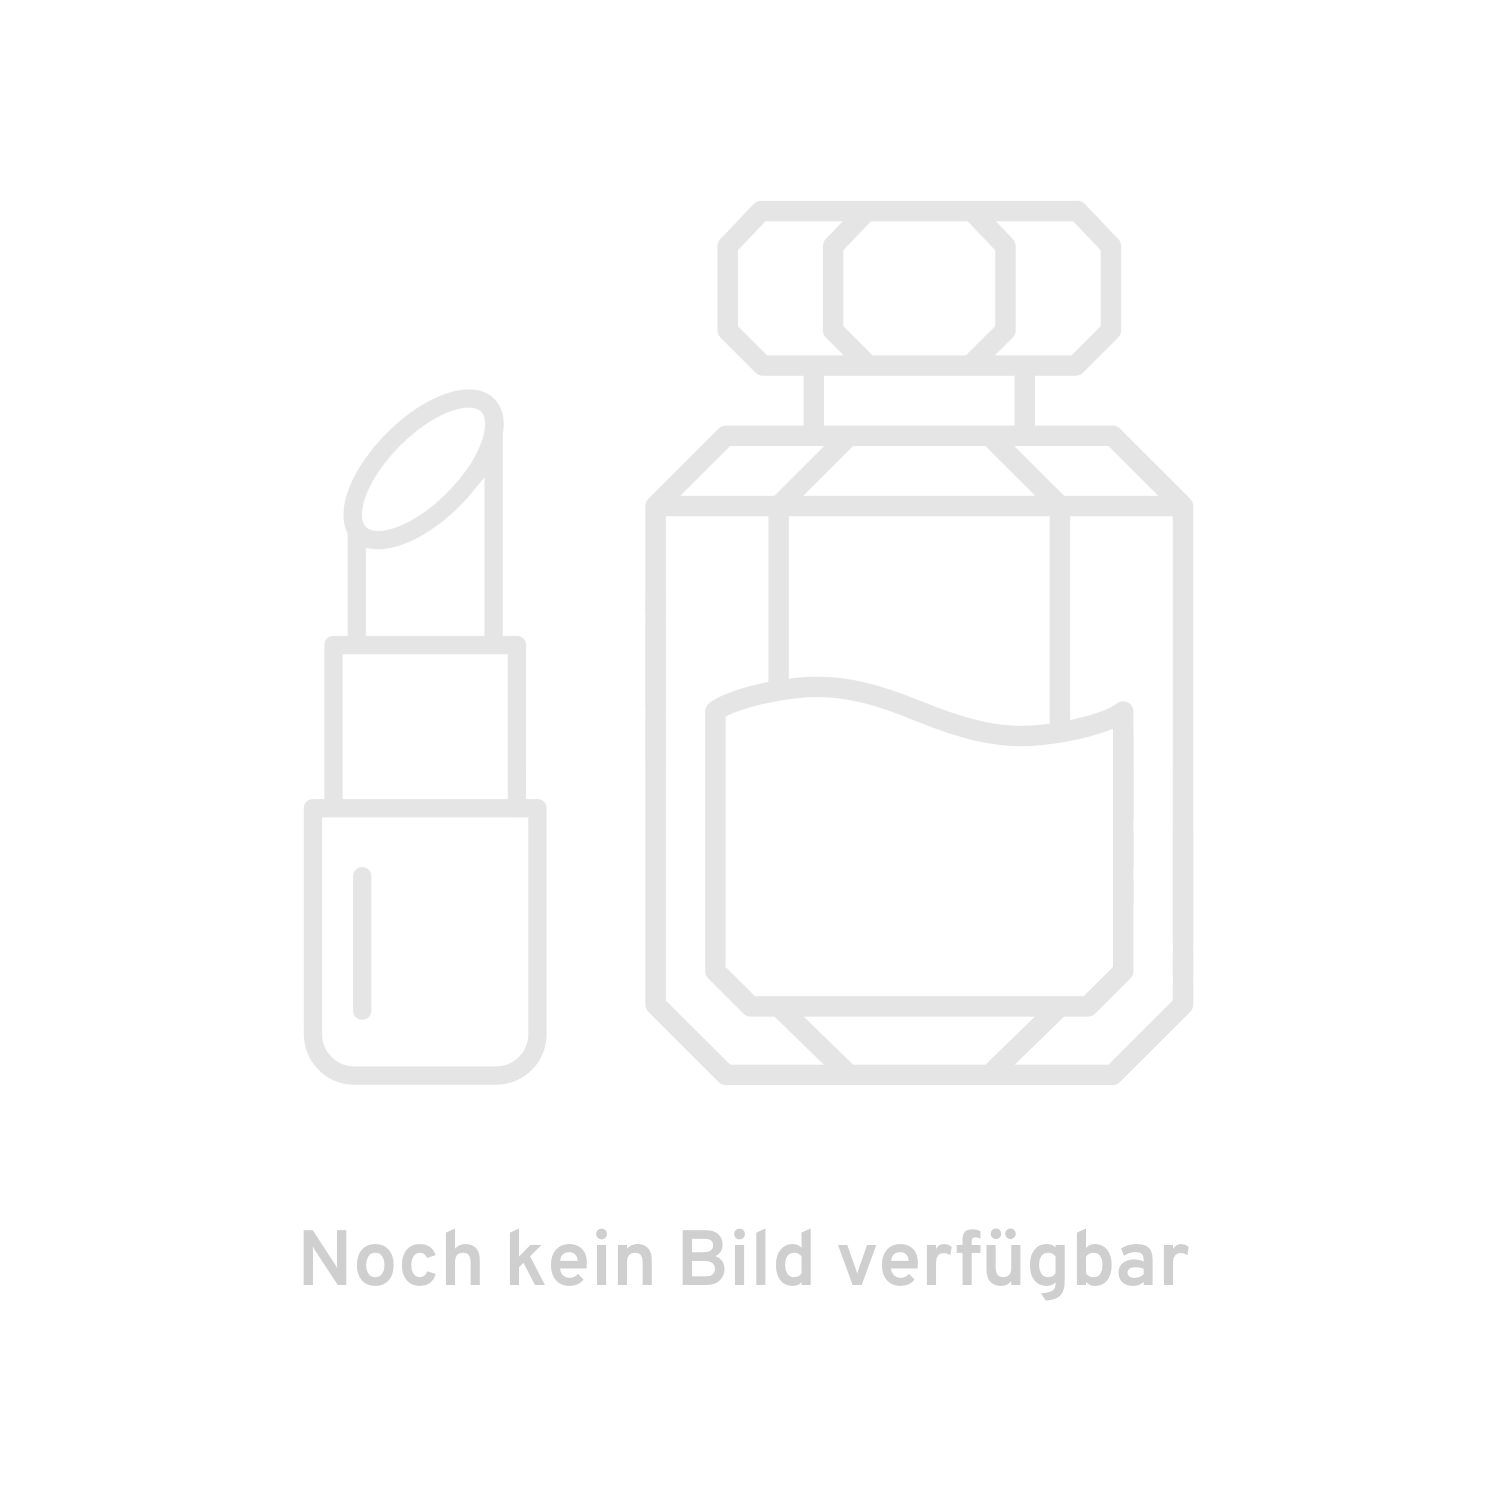 repairing shampoo with papyrus reed von molton brown bestellen bei ludwig beck beauty online. Black Bedroom Furniture Sets. Home Design Ideas